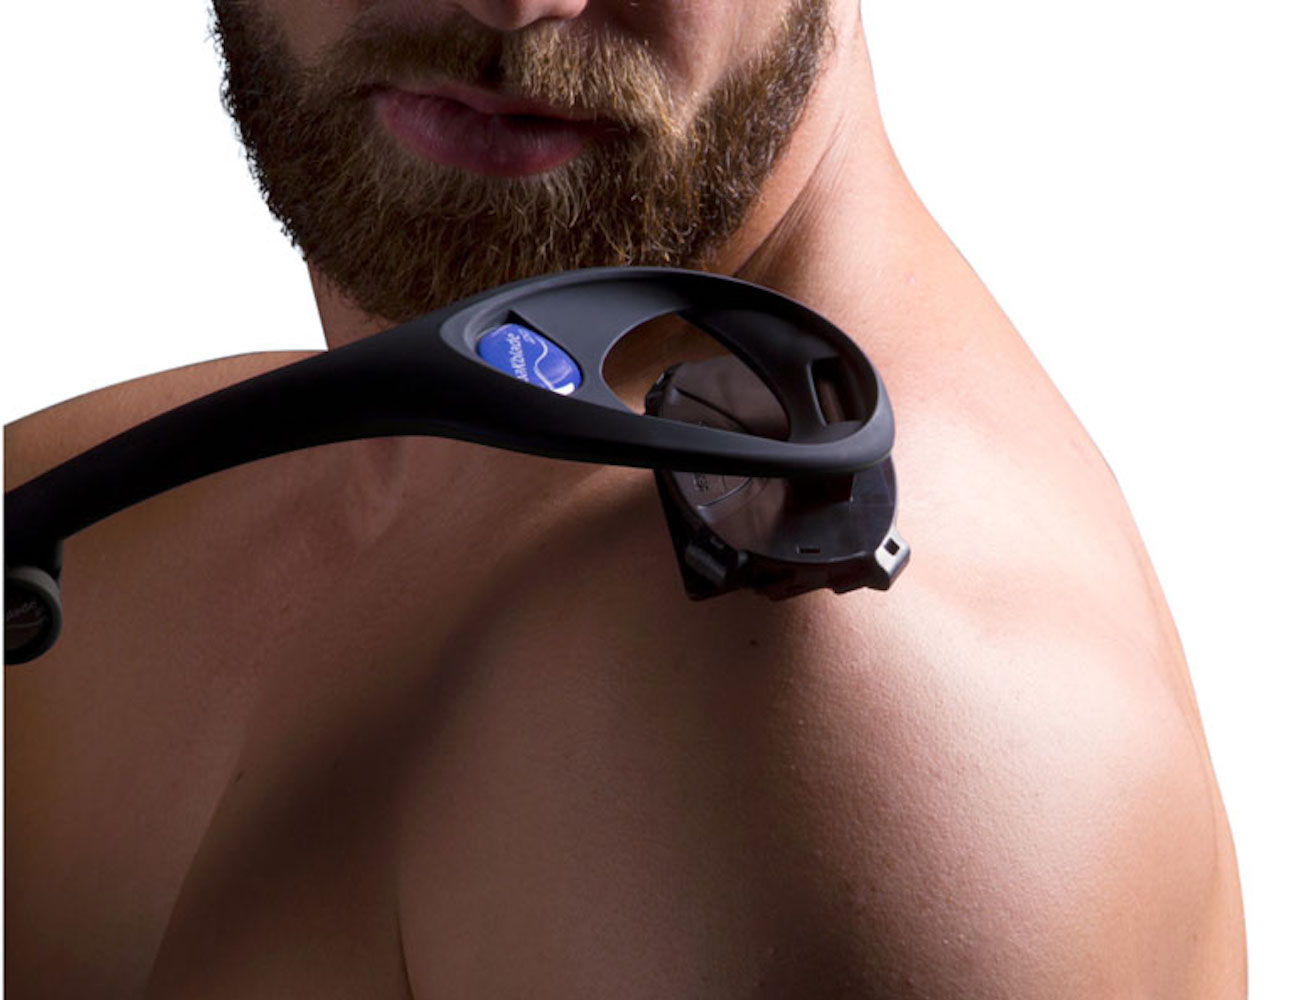 Bakblade 2.0 Back and Body Shaver